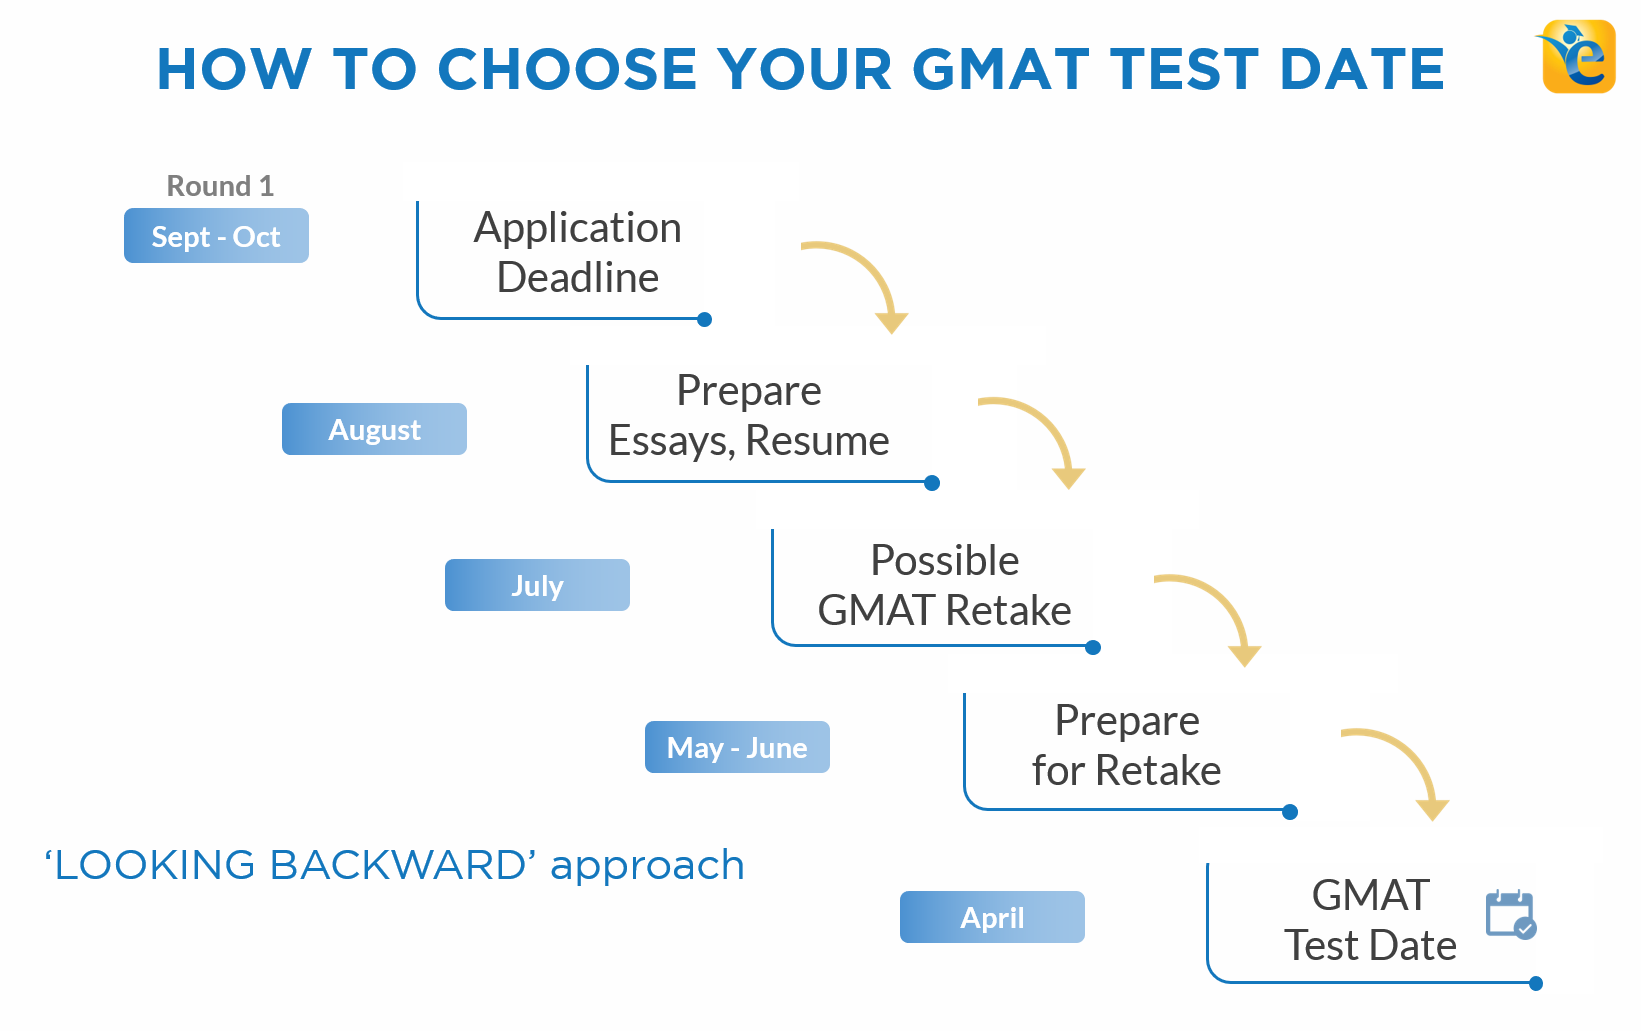 Gmat Exam Dates 2021 How And When To Schedule Your Gmat Test Date